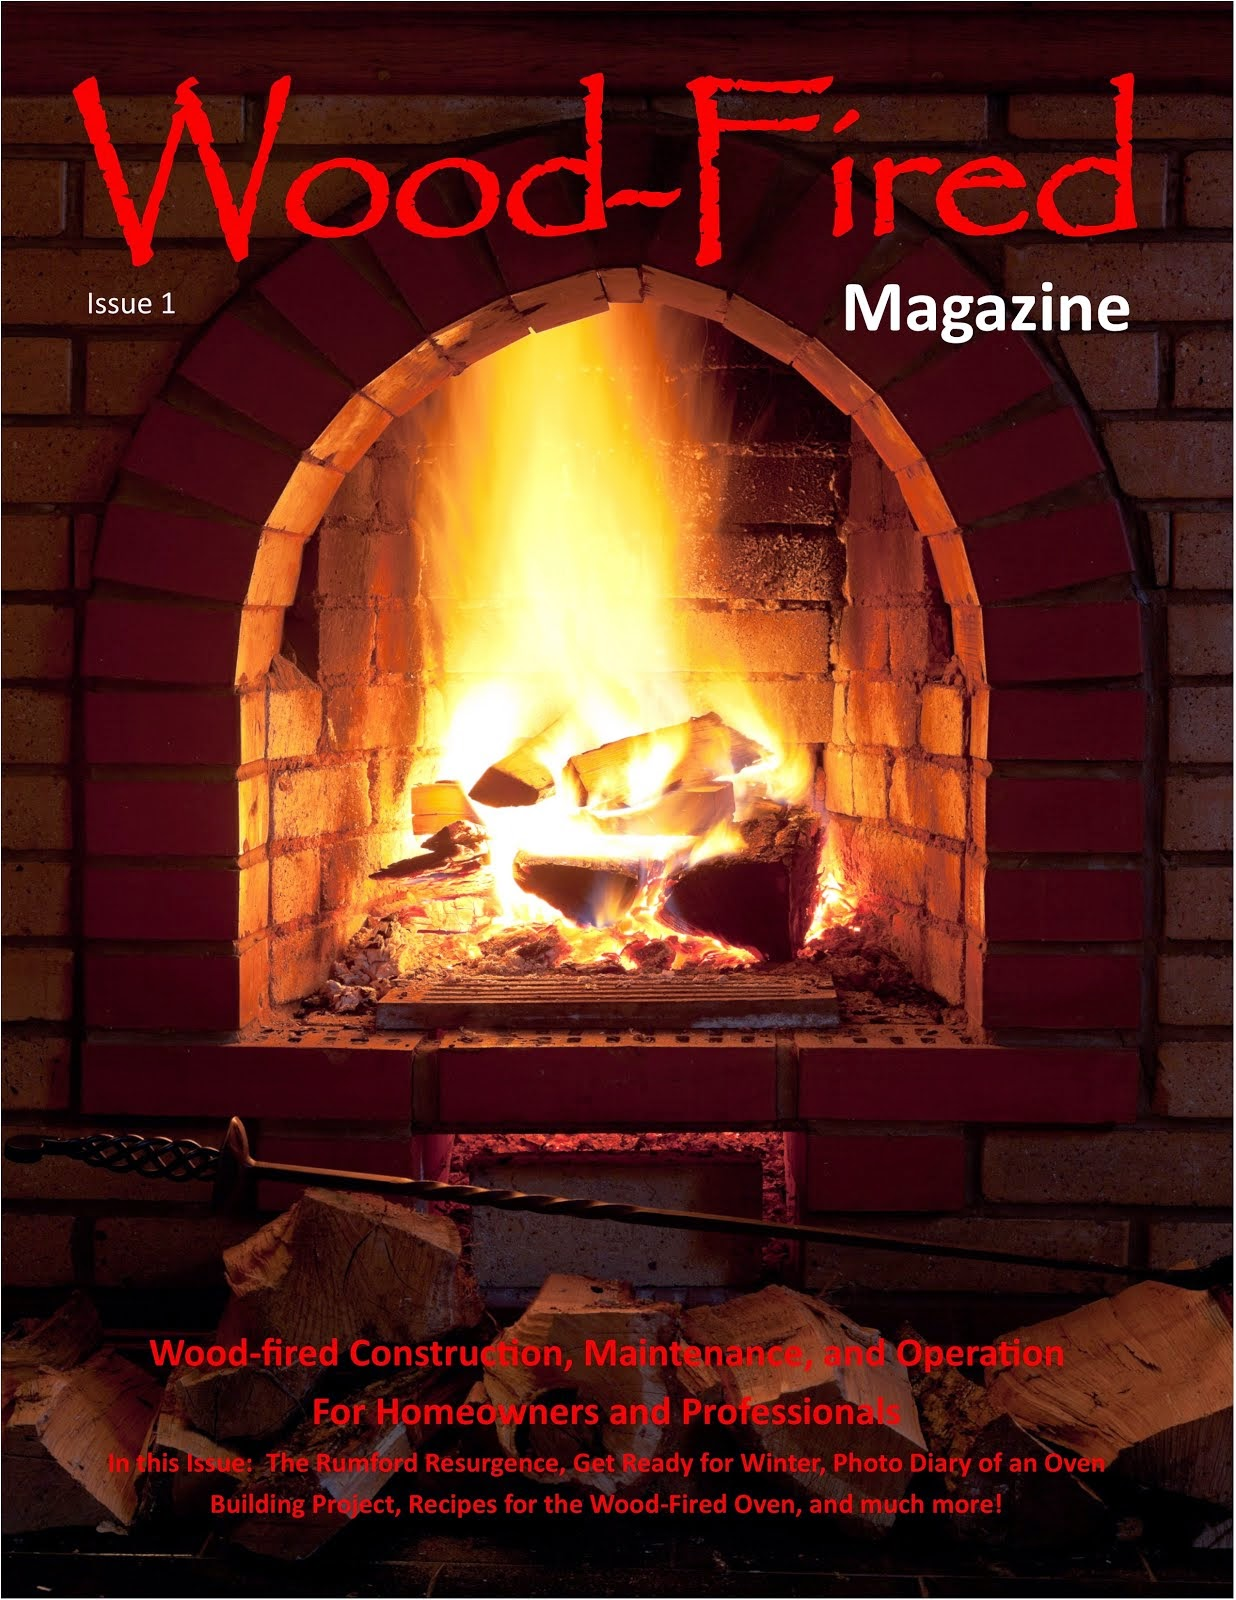 Wood-Fired Magazine